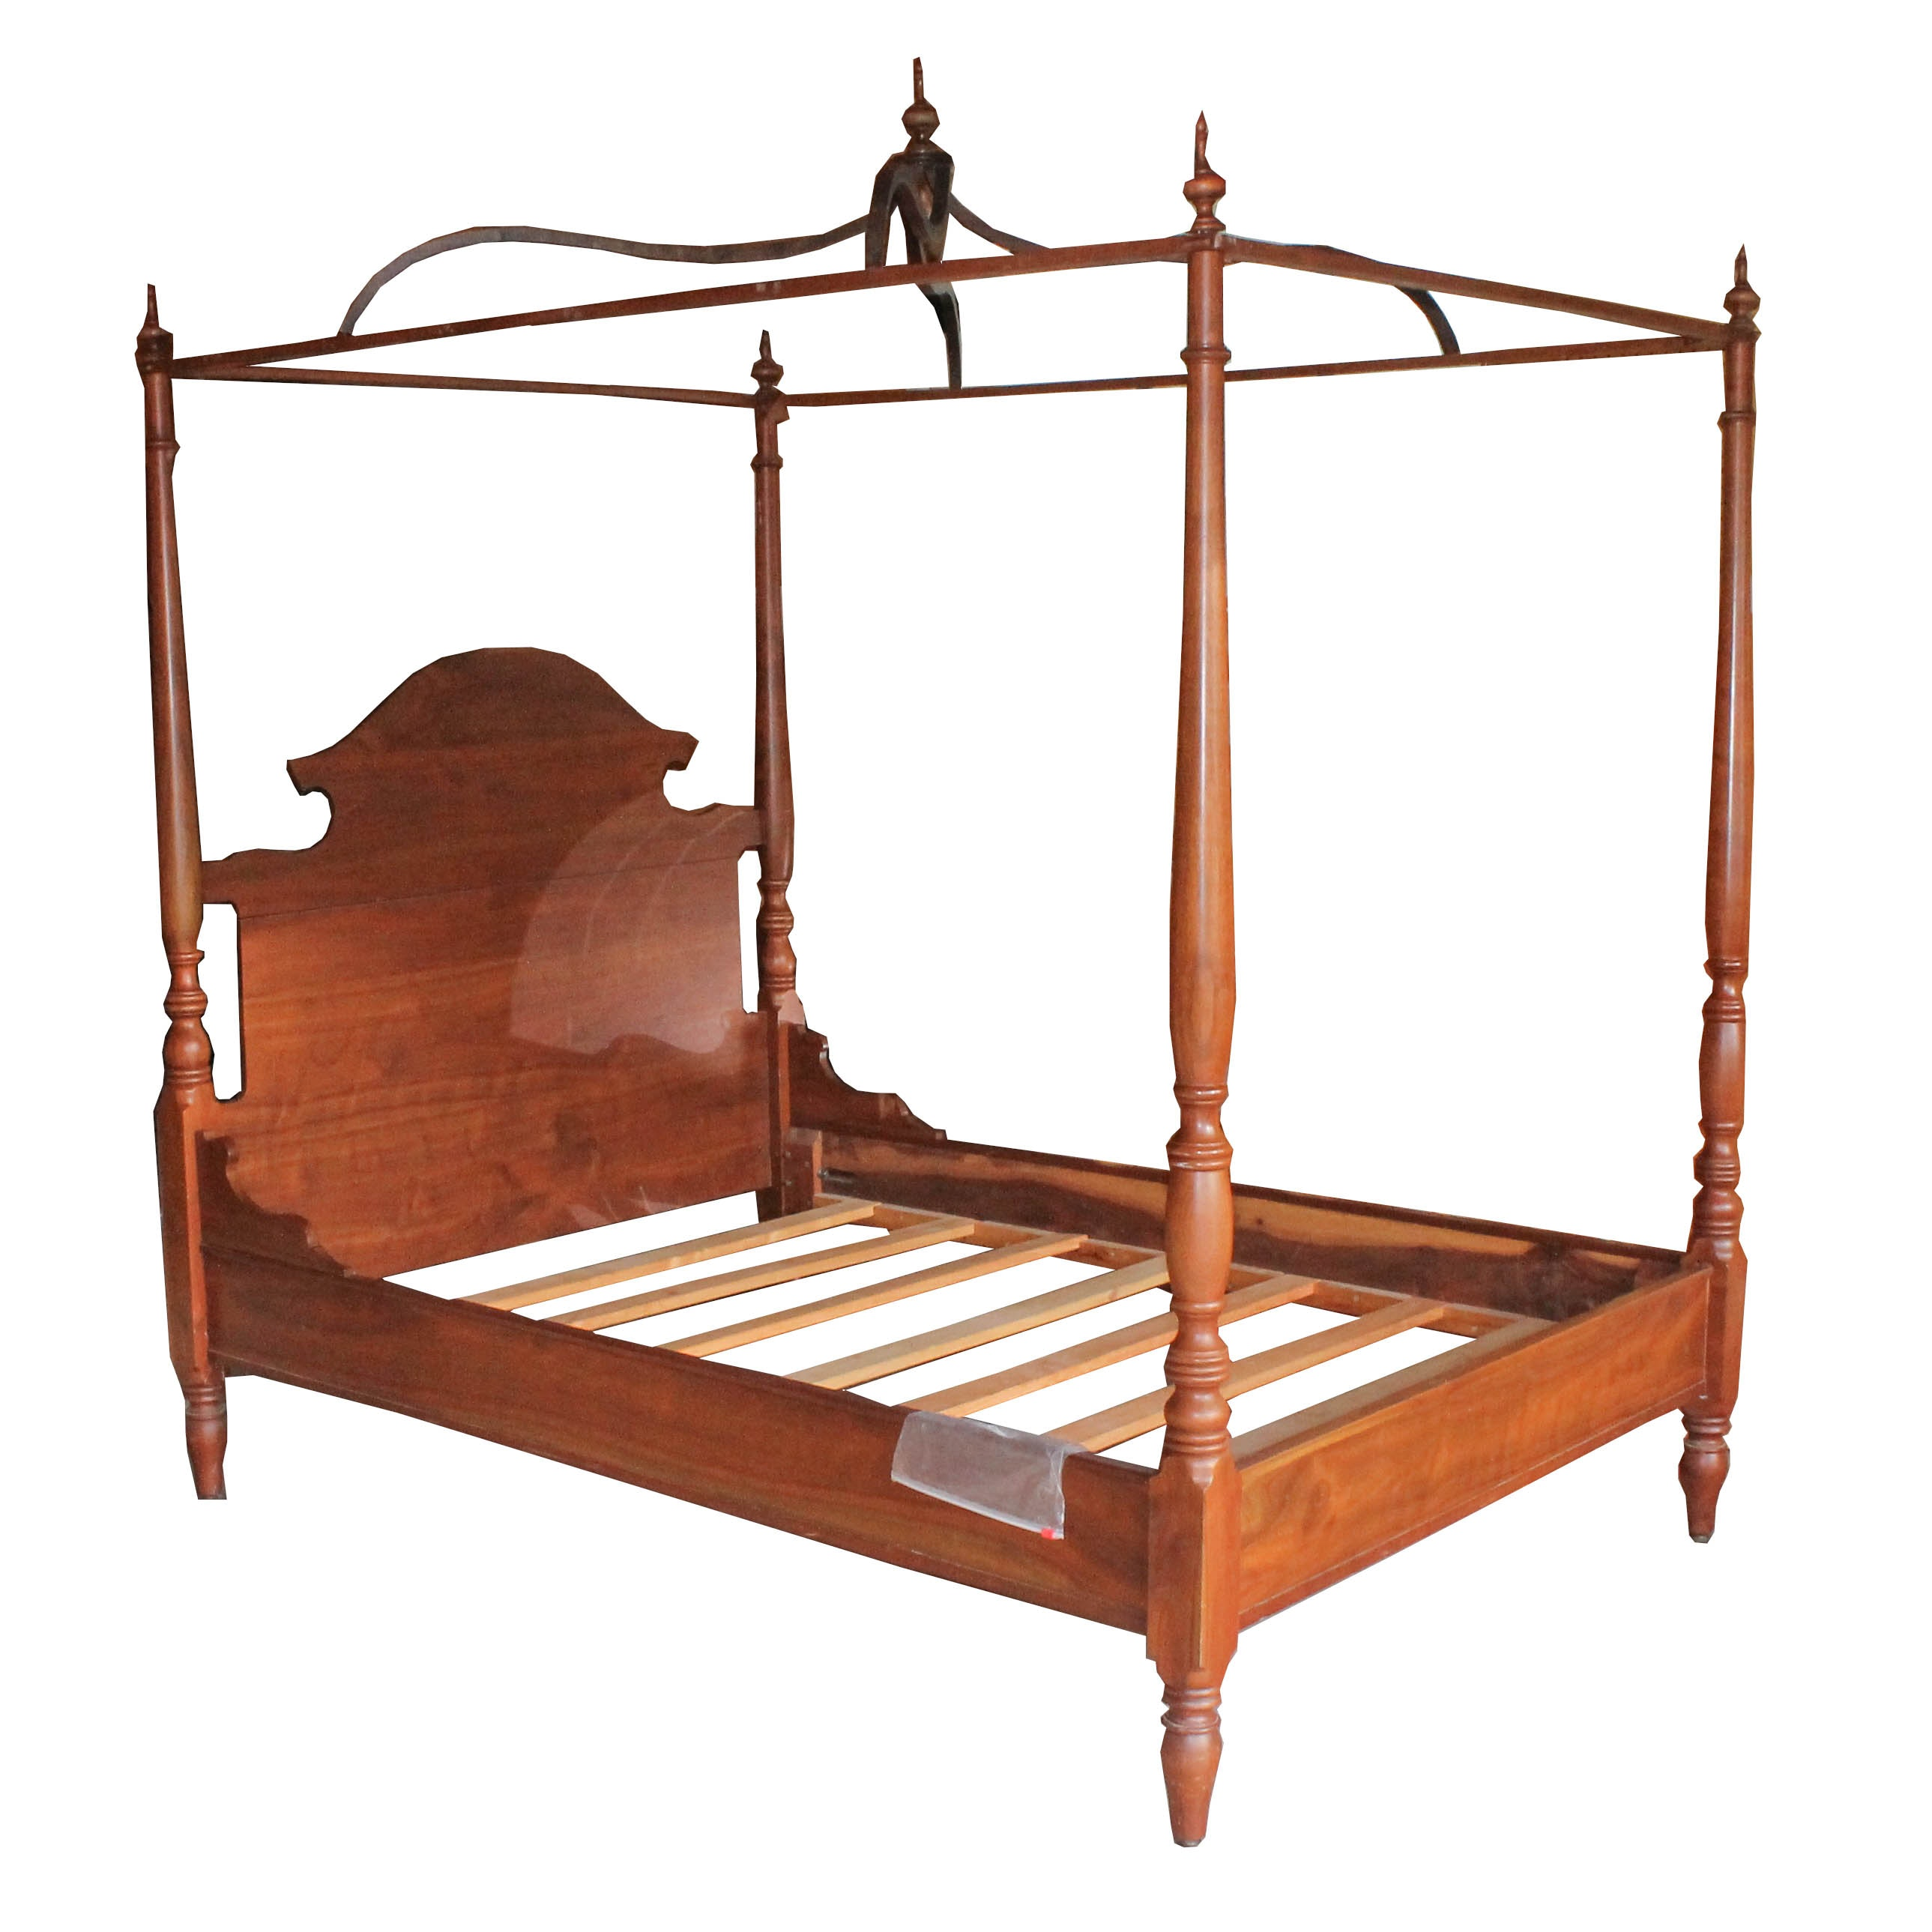 Custom-Made Four-Poster Canopy Bed